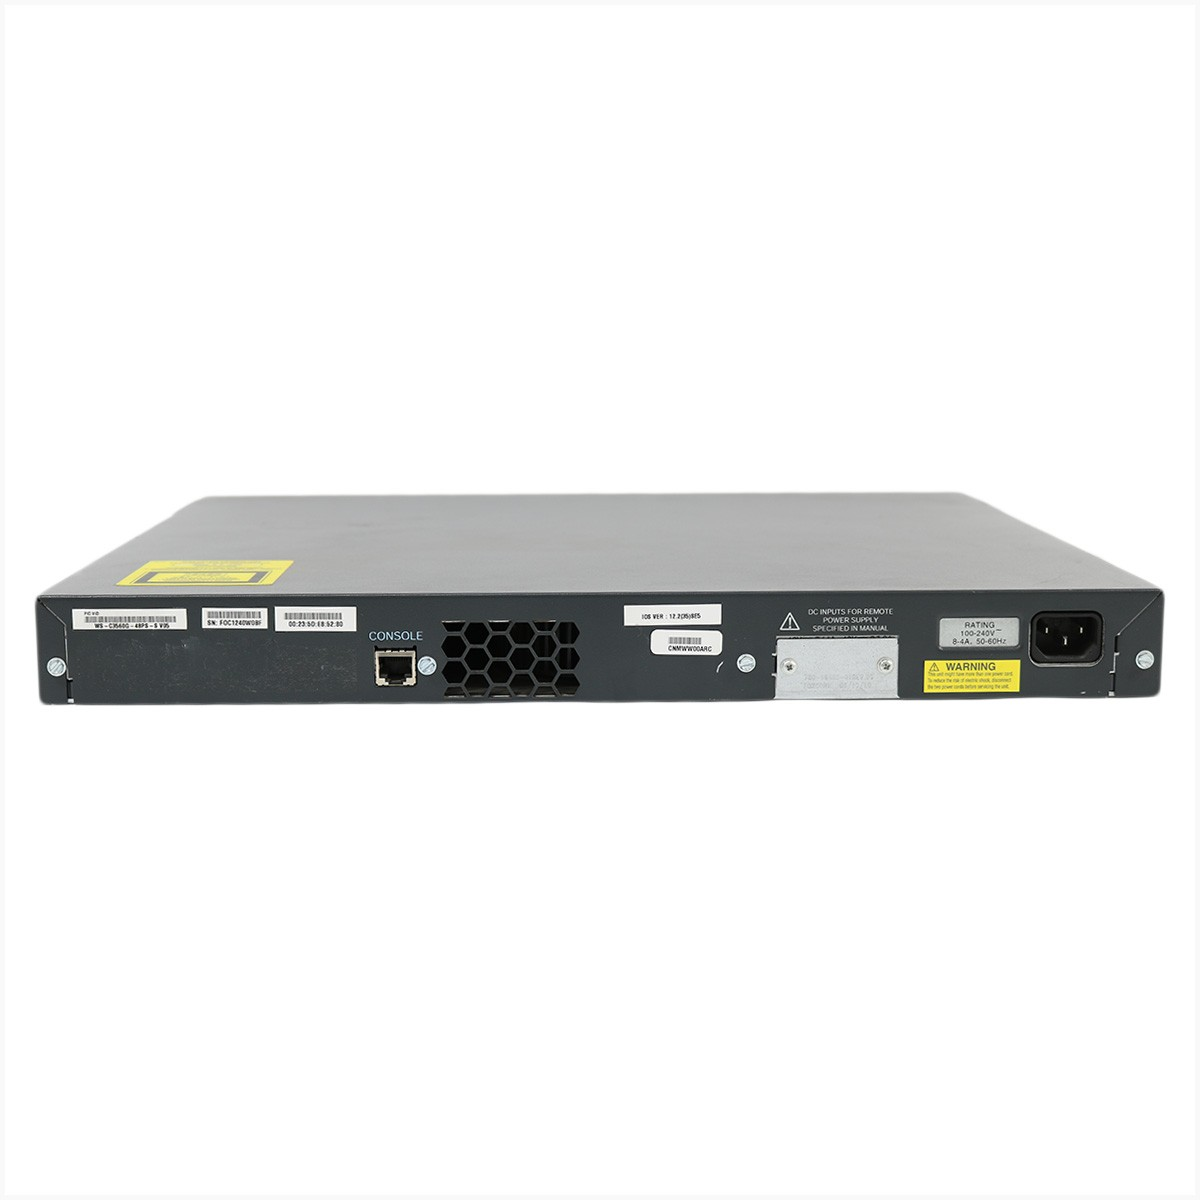 Switch ws-3560-48ps-s 48 portas poe - usado